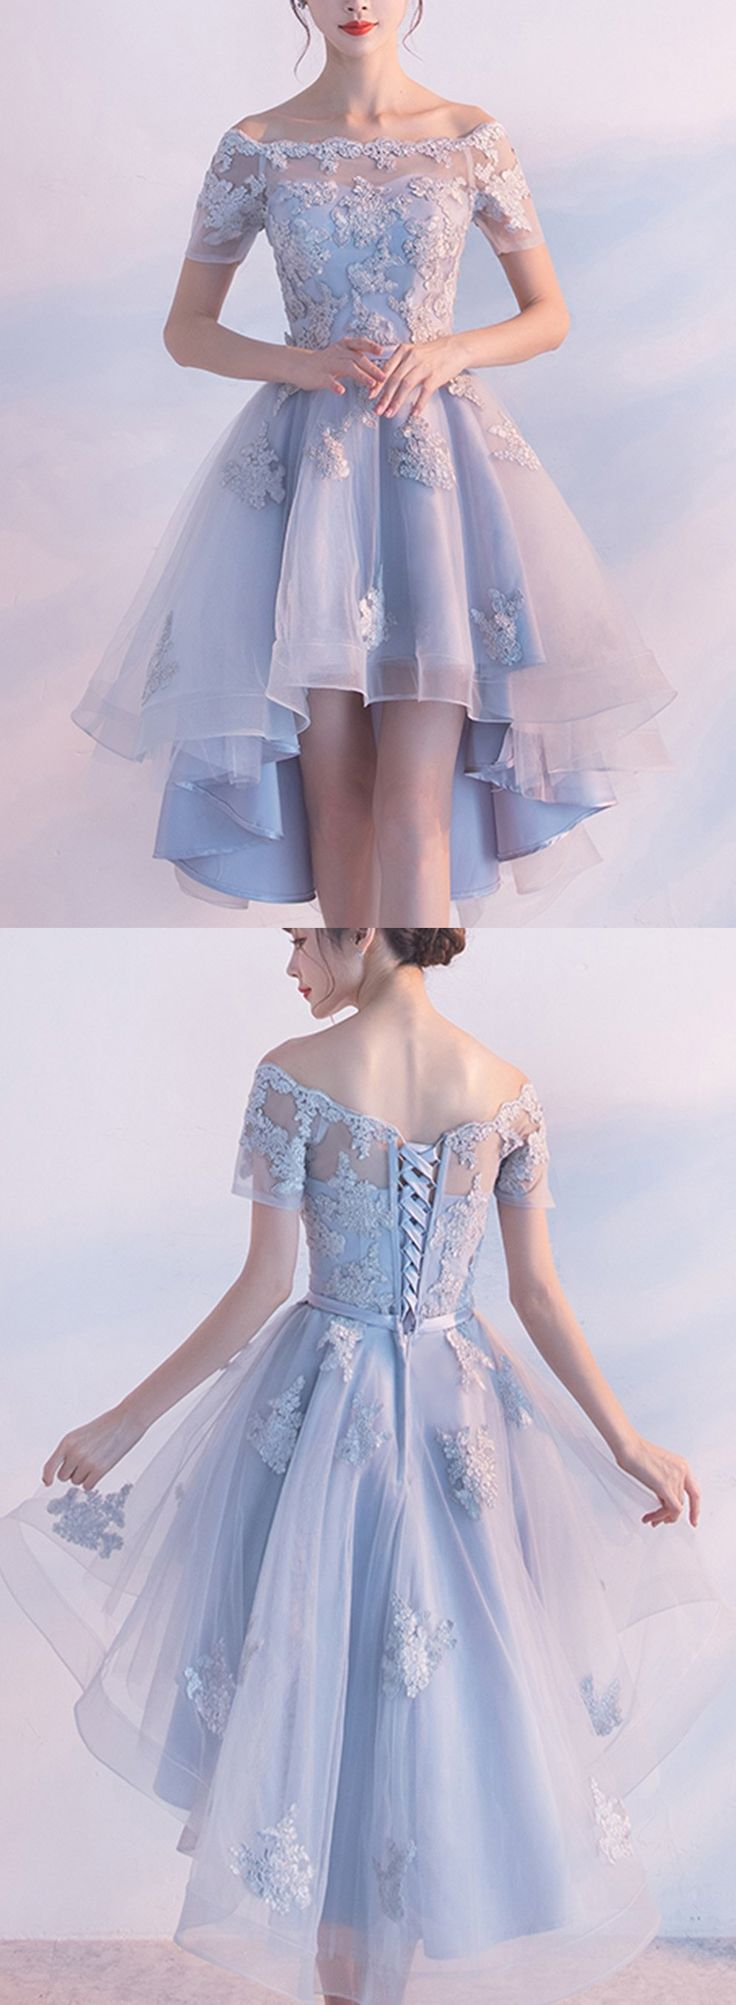 A lovely periwinkle-blue dress with a layered skirt and a lace-up back